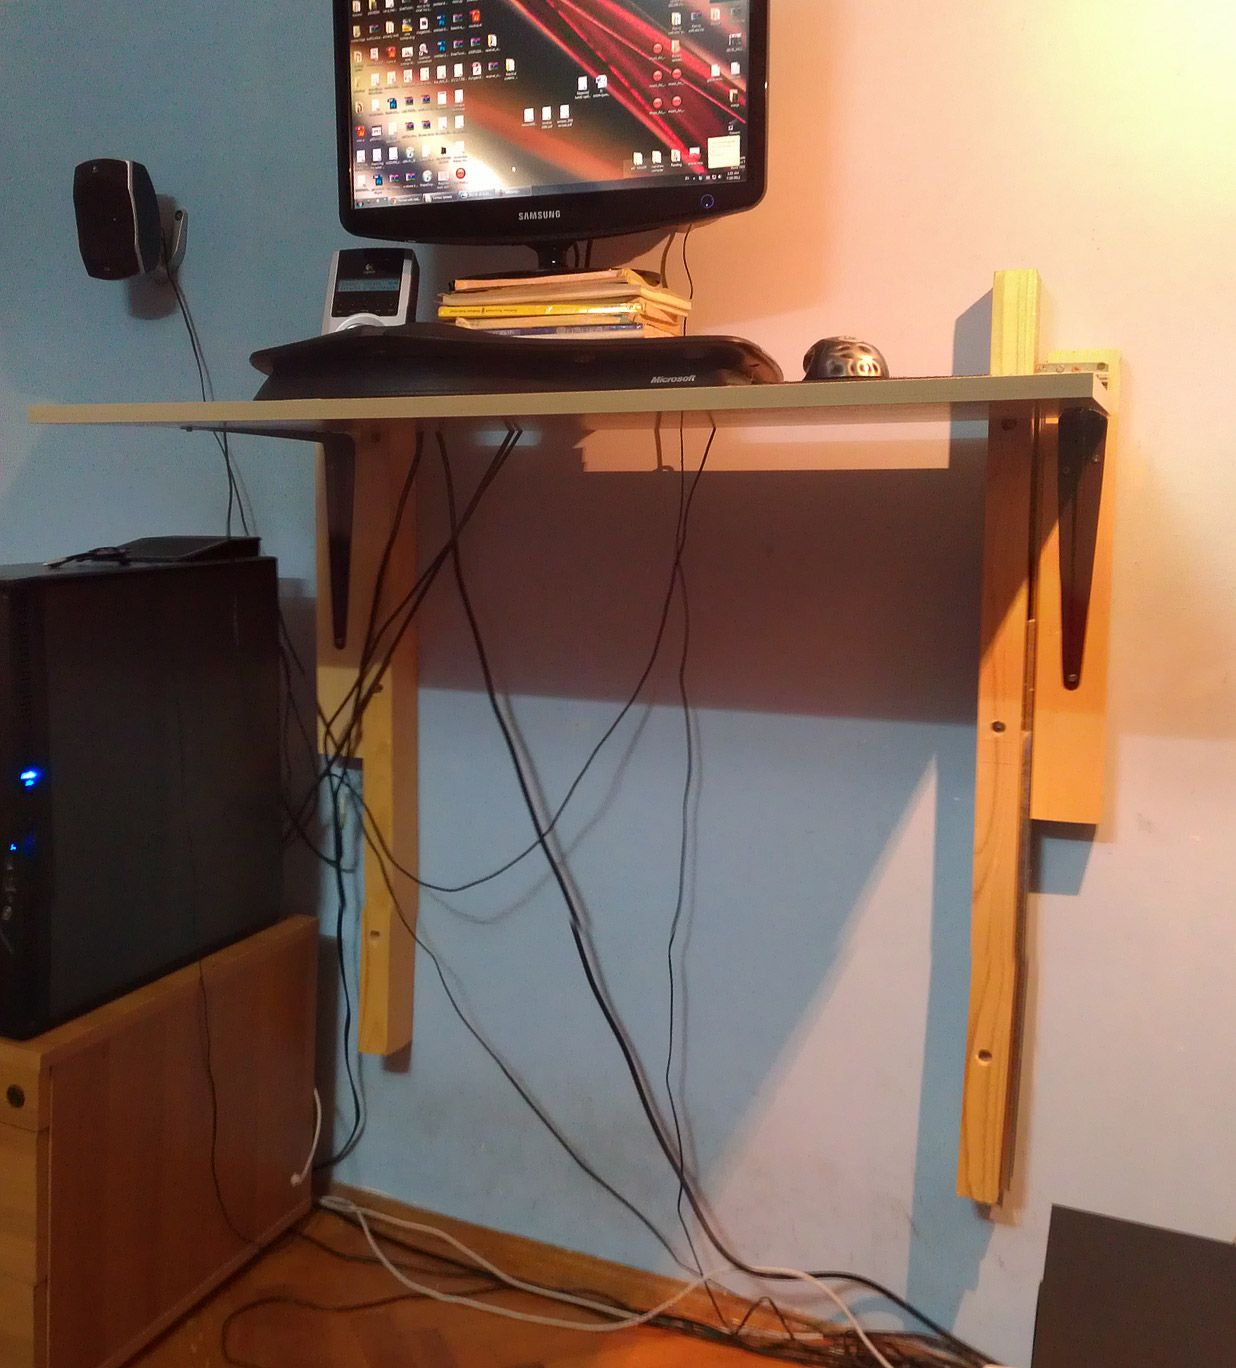 Cheap DIY Standing desk httpbgrztumblrcompost27557187959